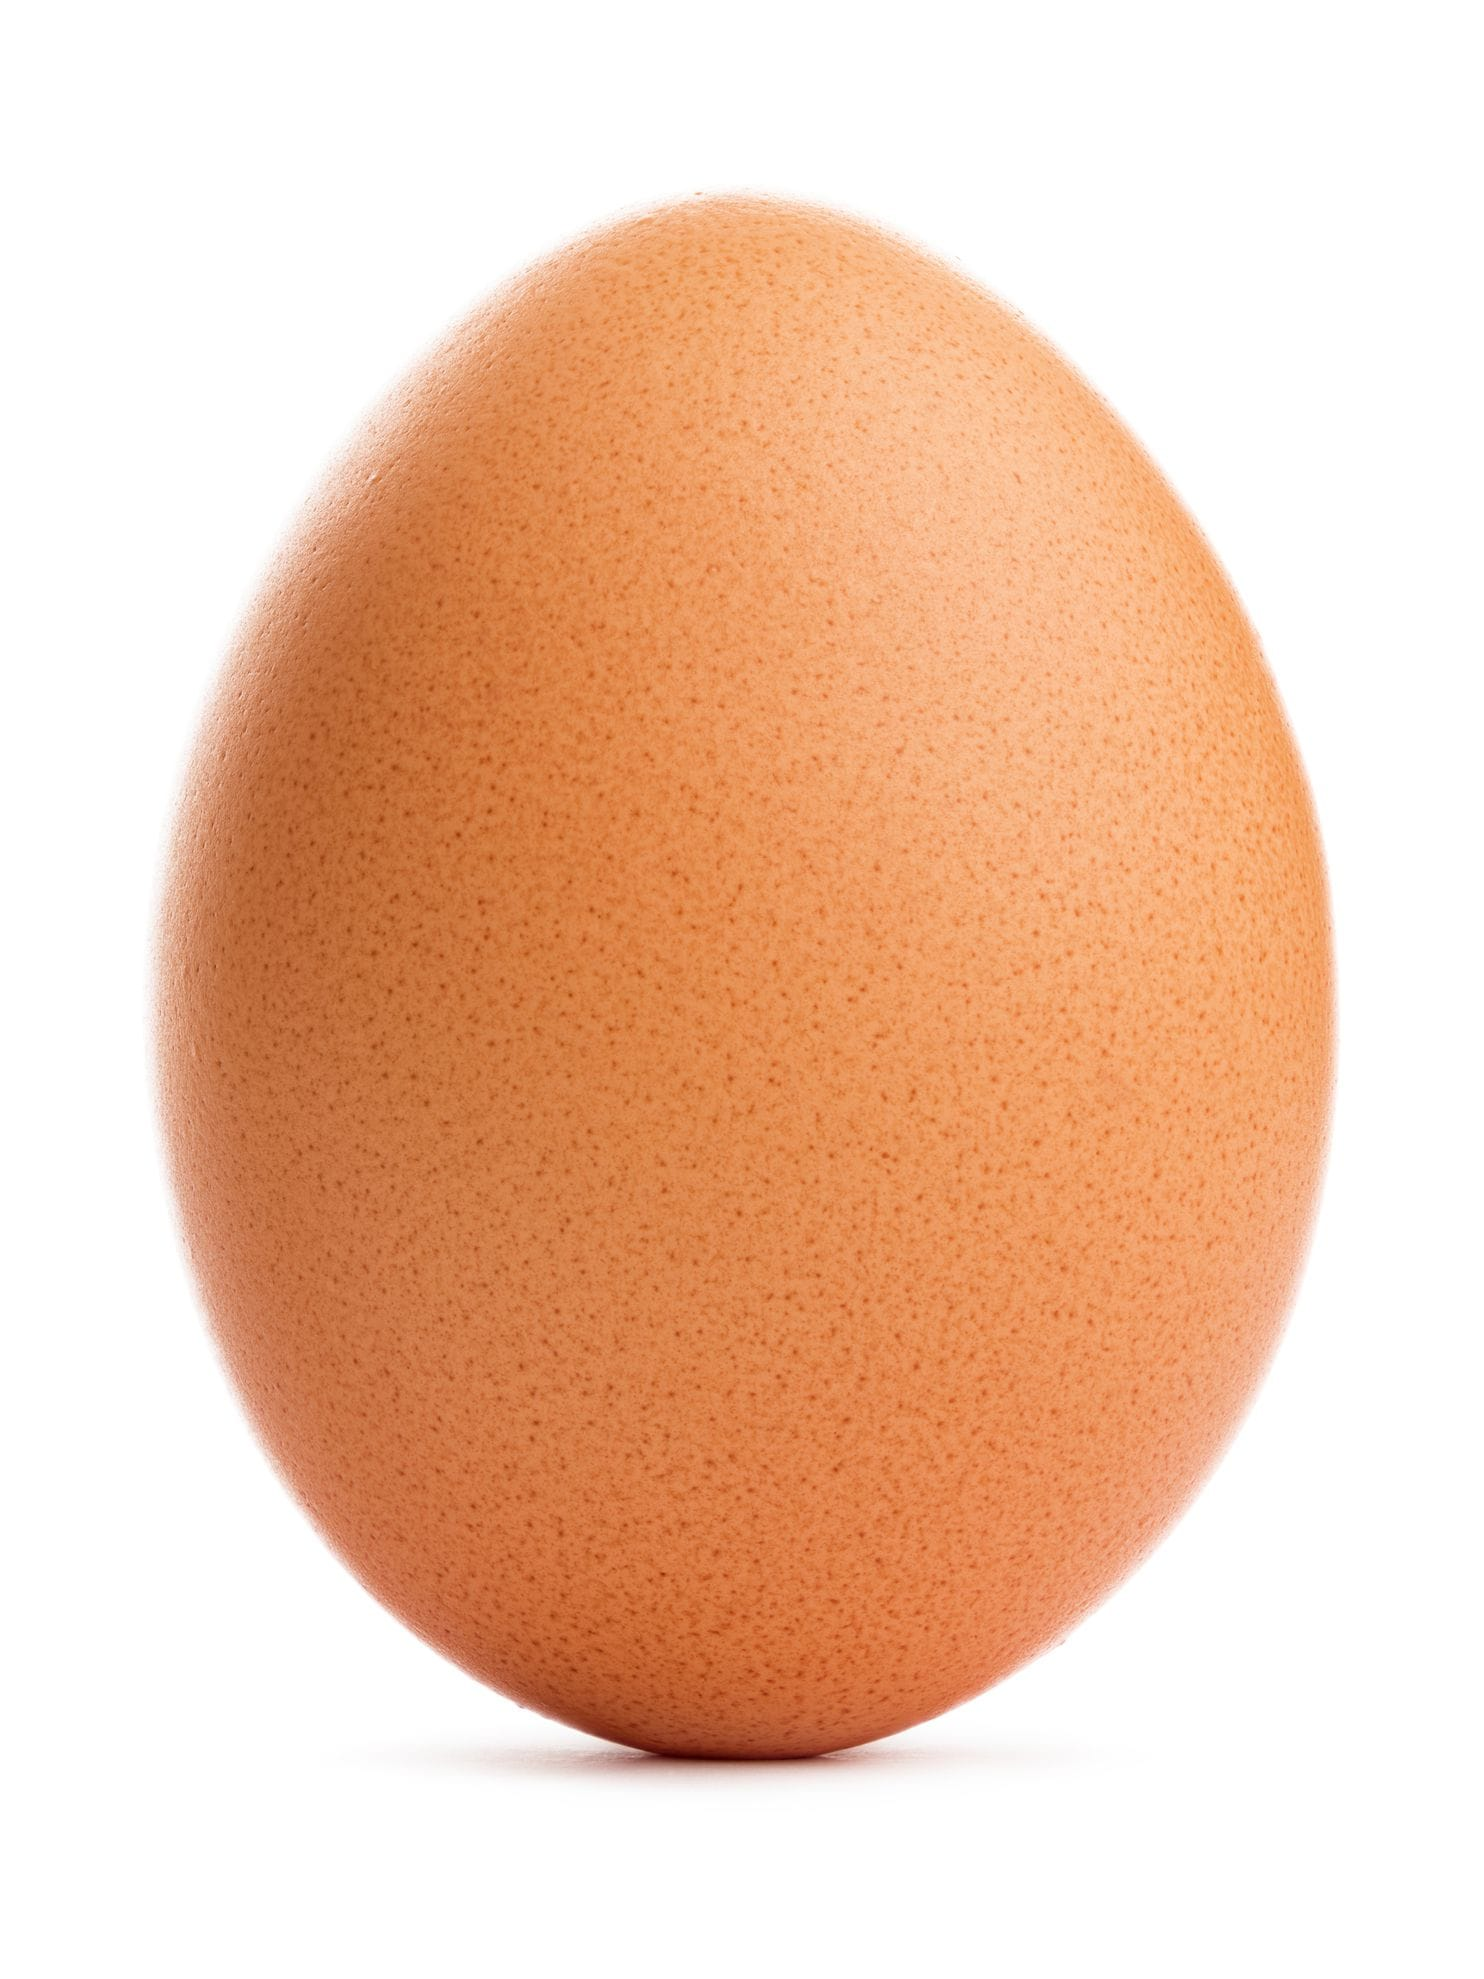 Do all those kids really like eggs Or do they just like